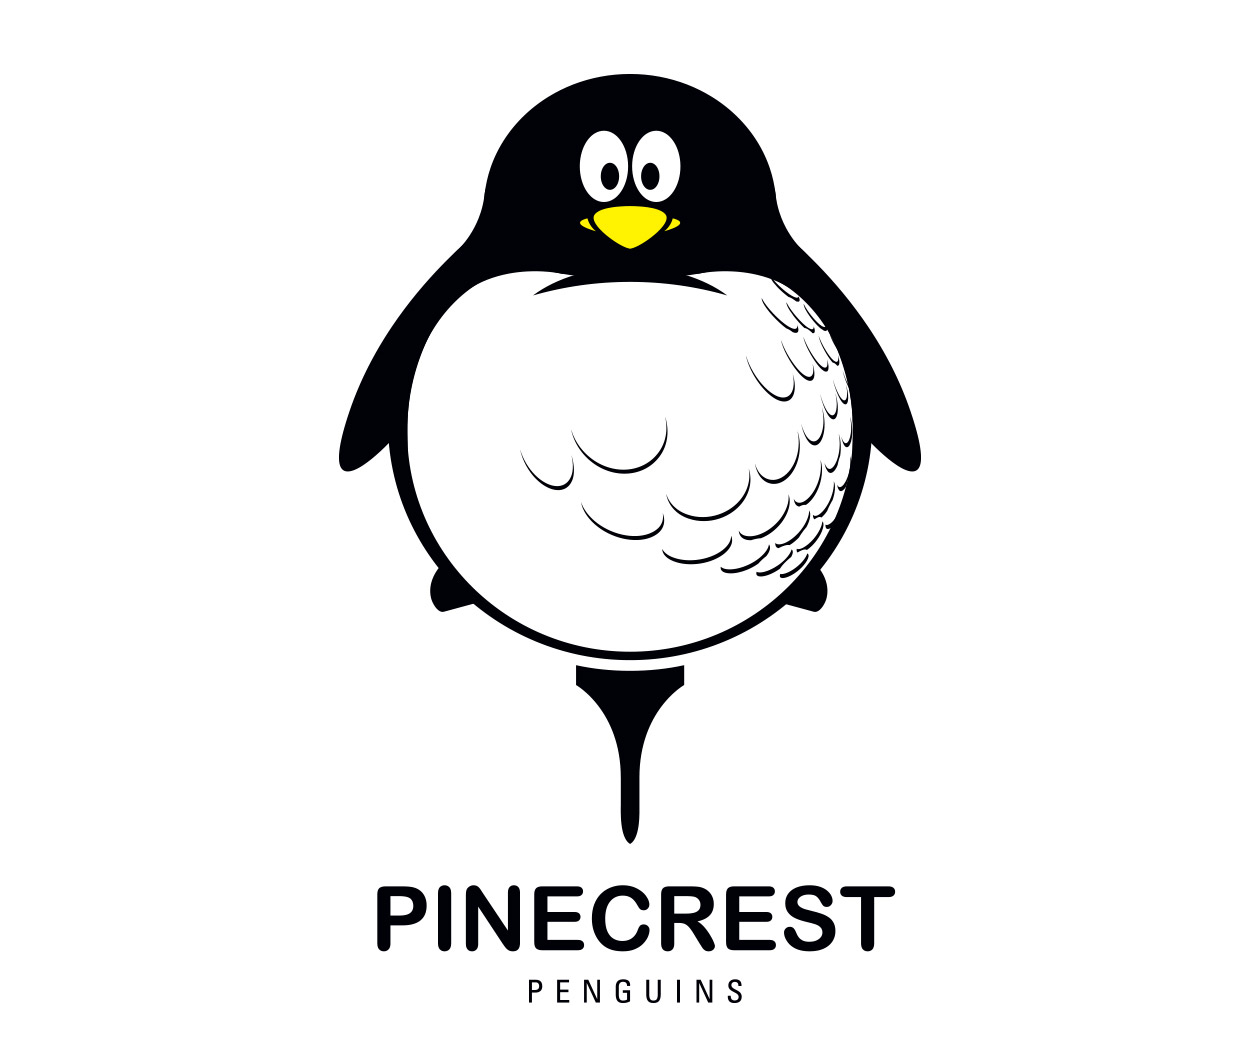 custom country club children's golf team logo design for the pinecrest penguins by jordan fretz design